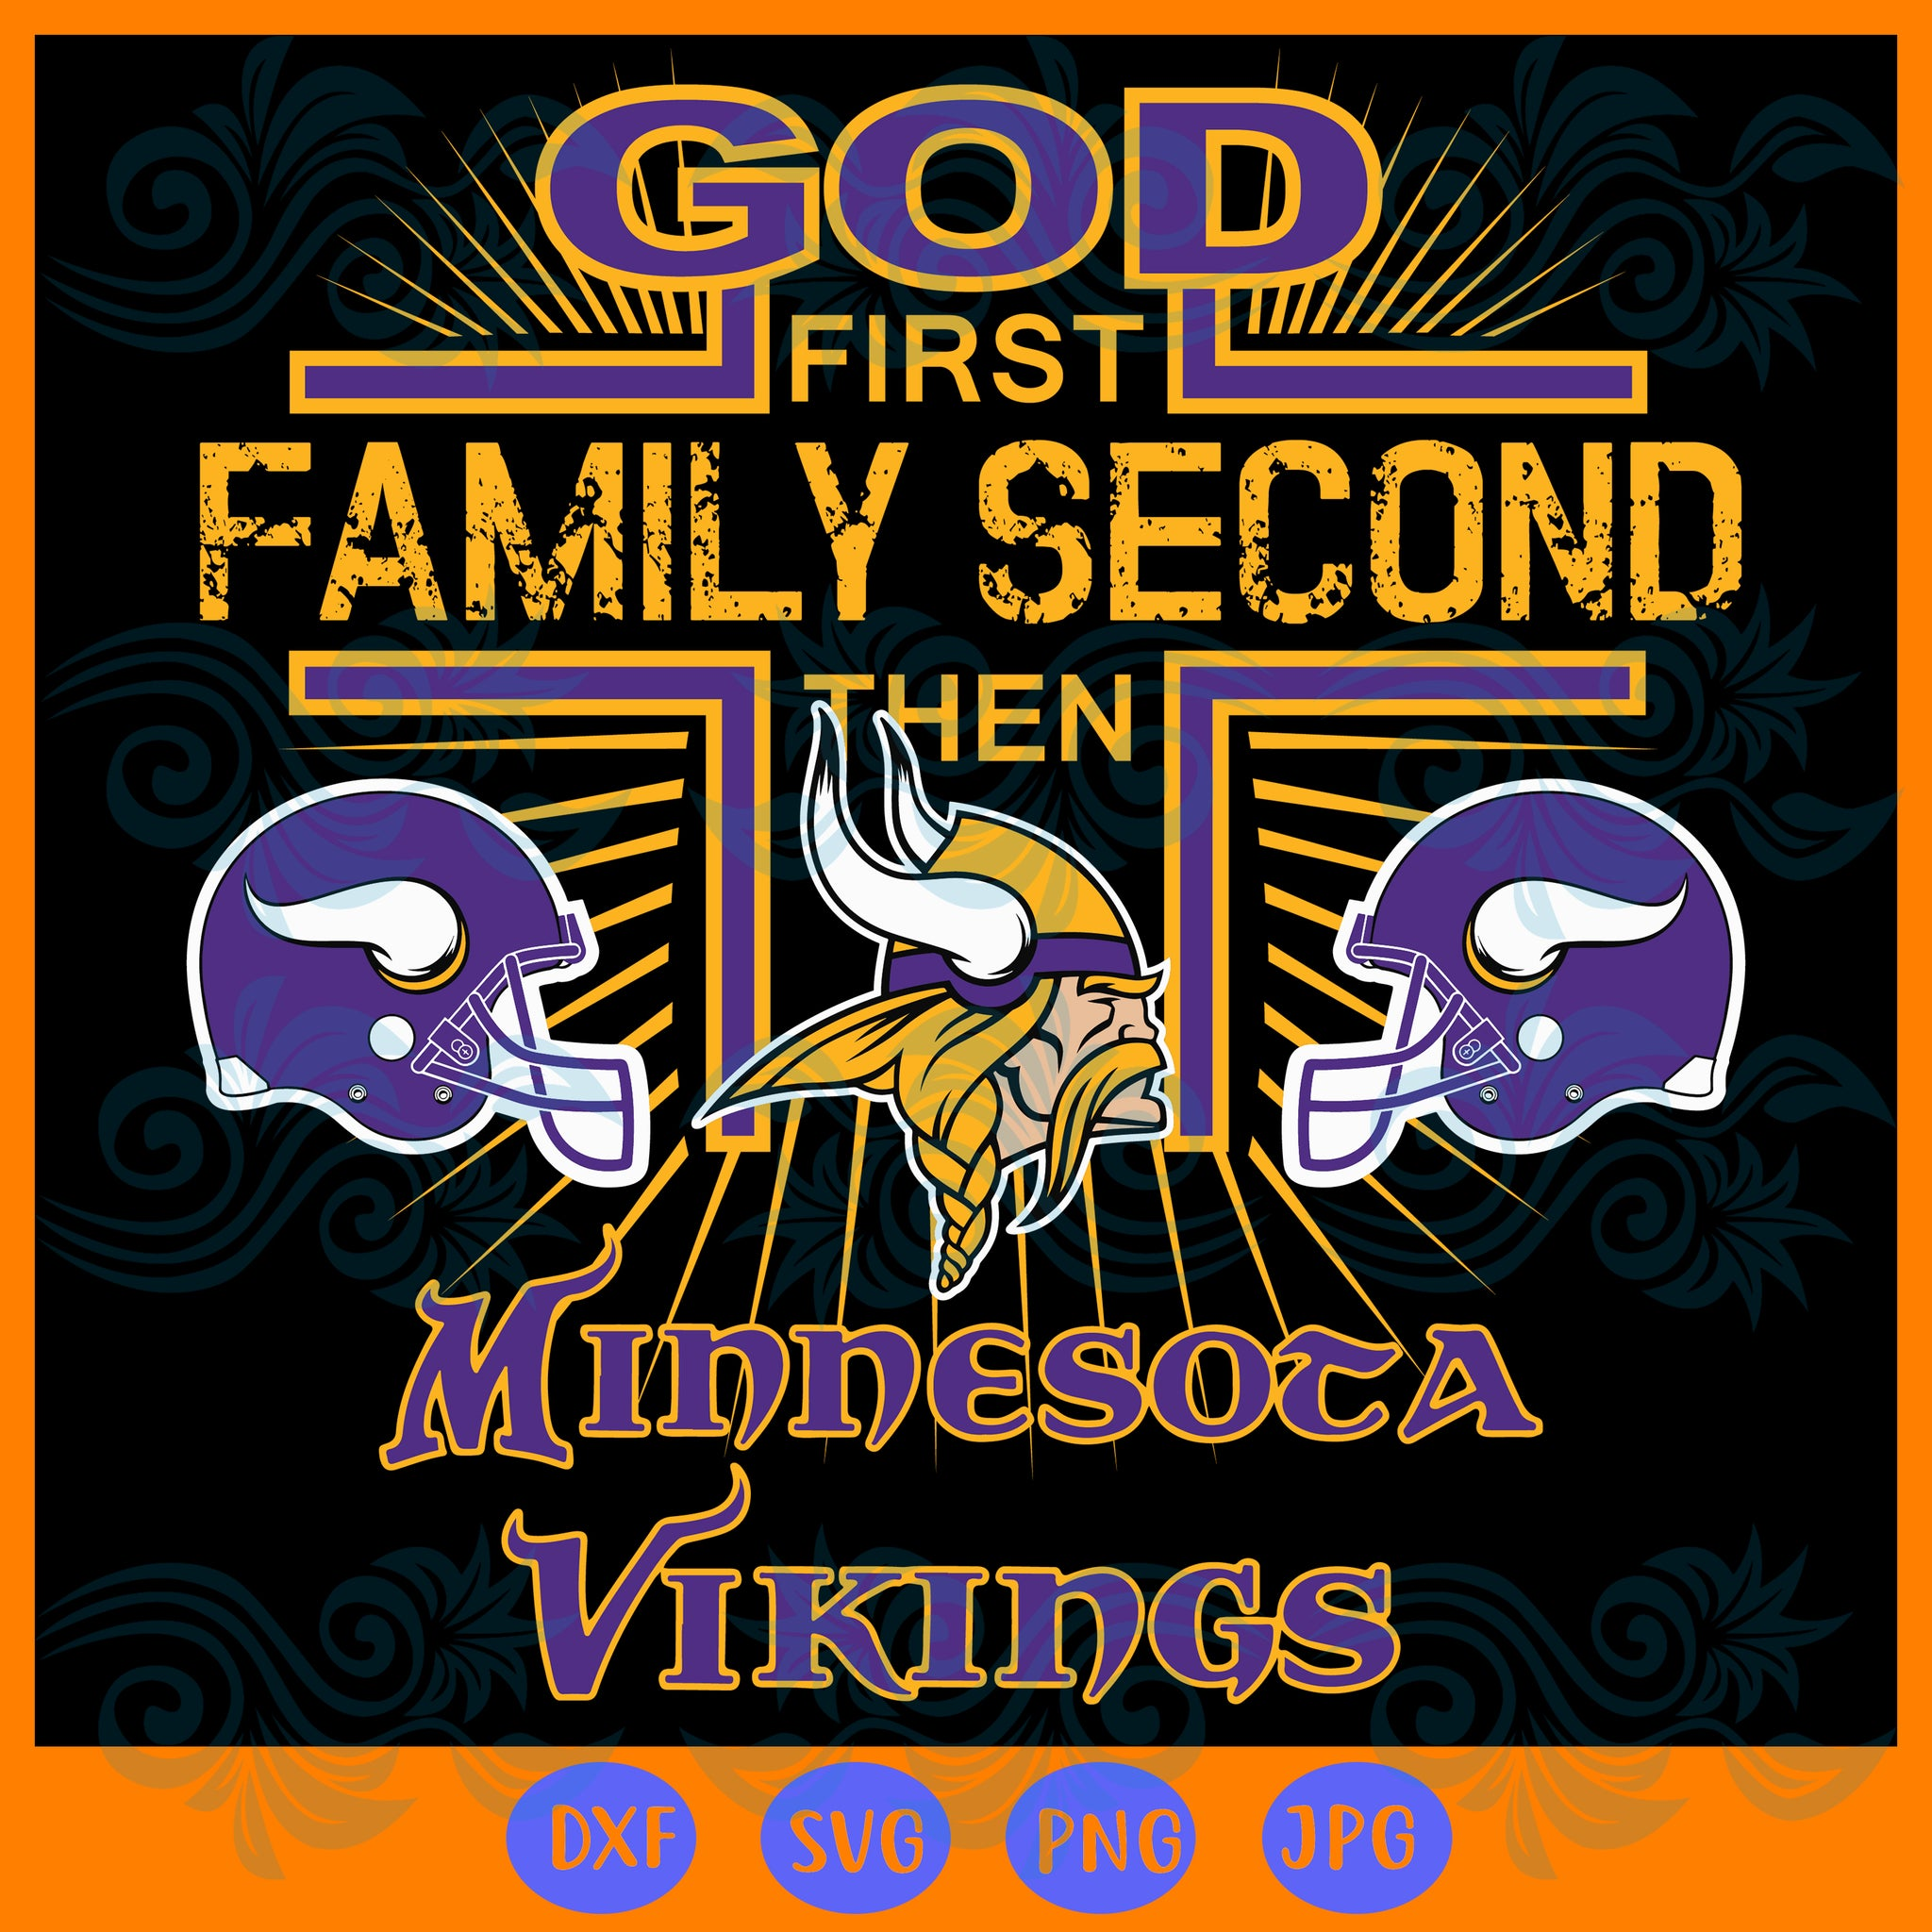 Minnesota Vikings SVG,SVG Files For Silhouette, Files For Cricut, SVG, DXF, EPS, PNG Instant Download